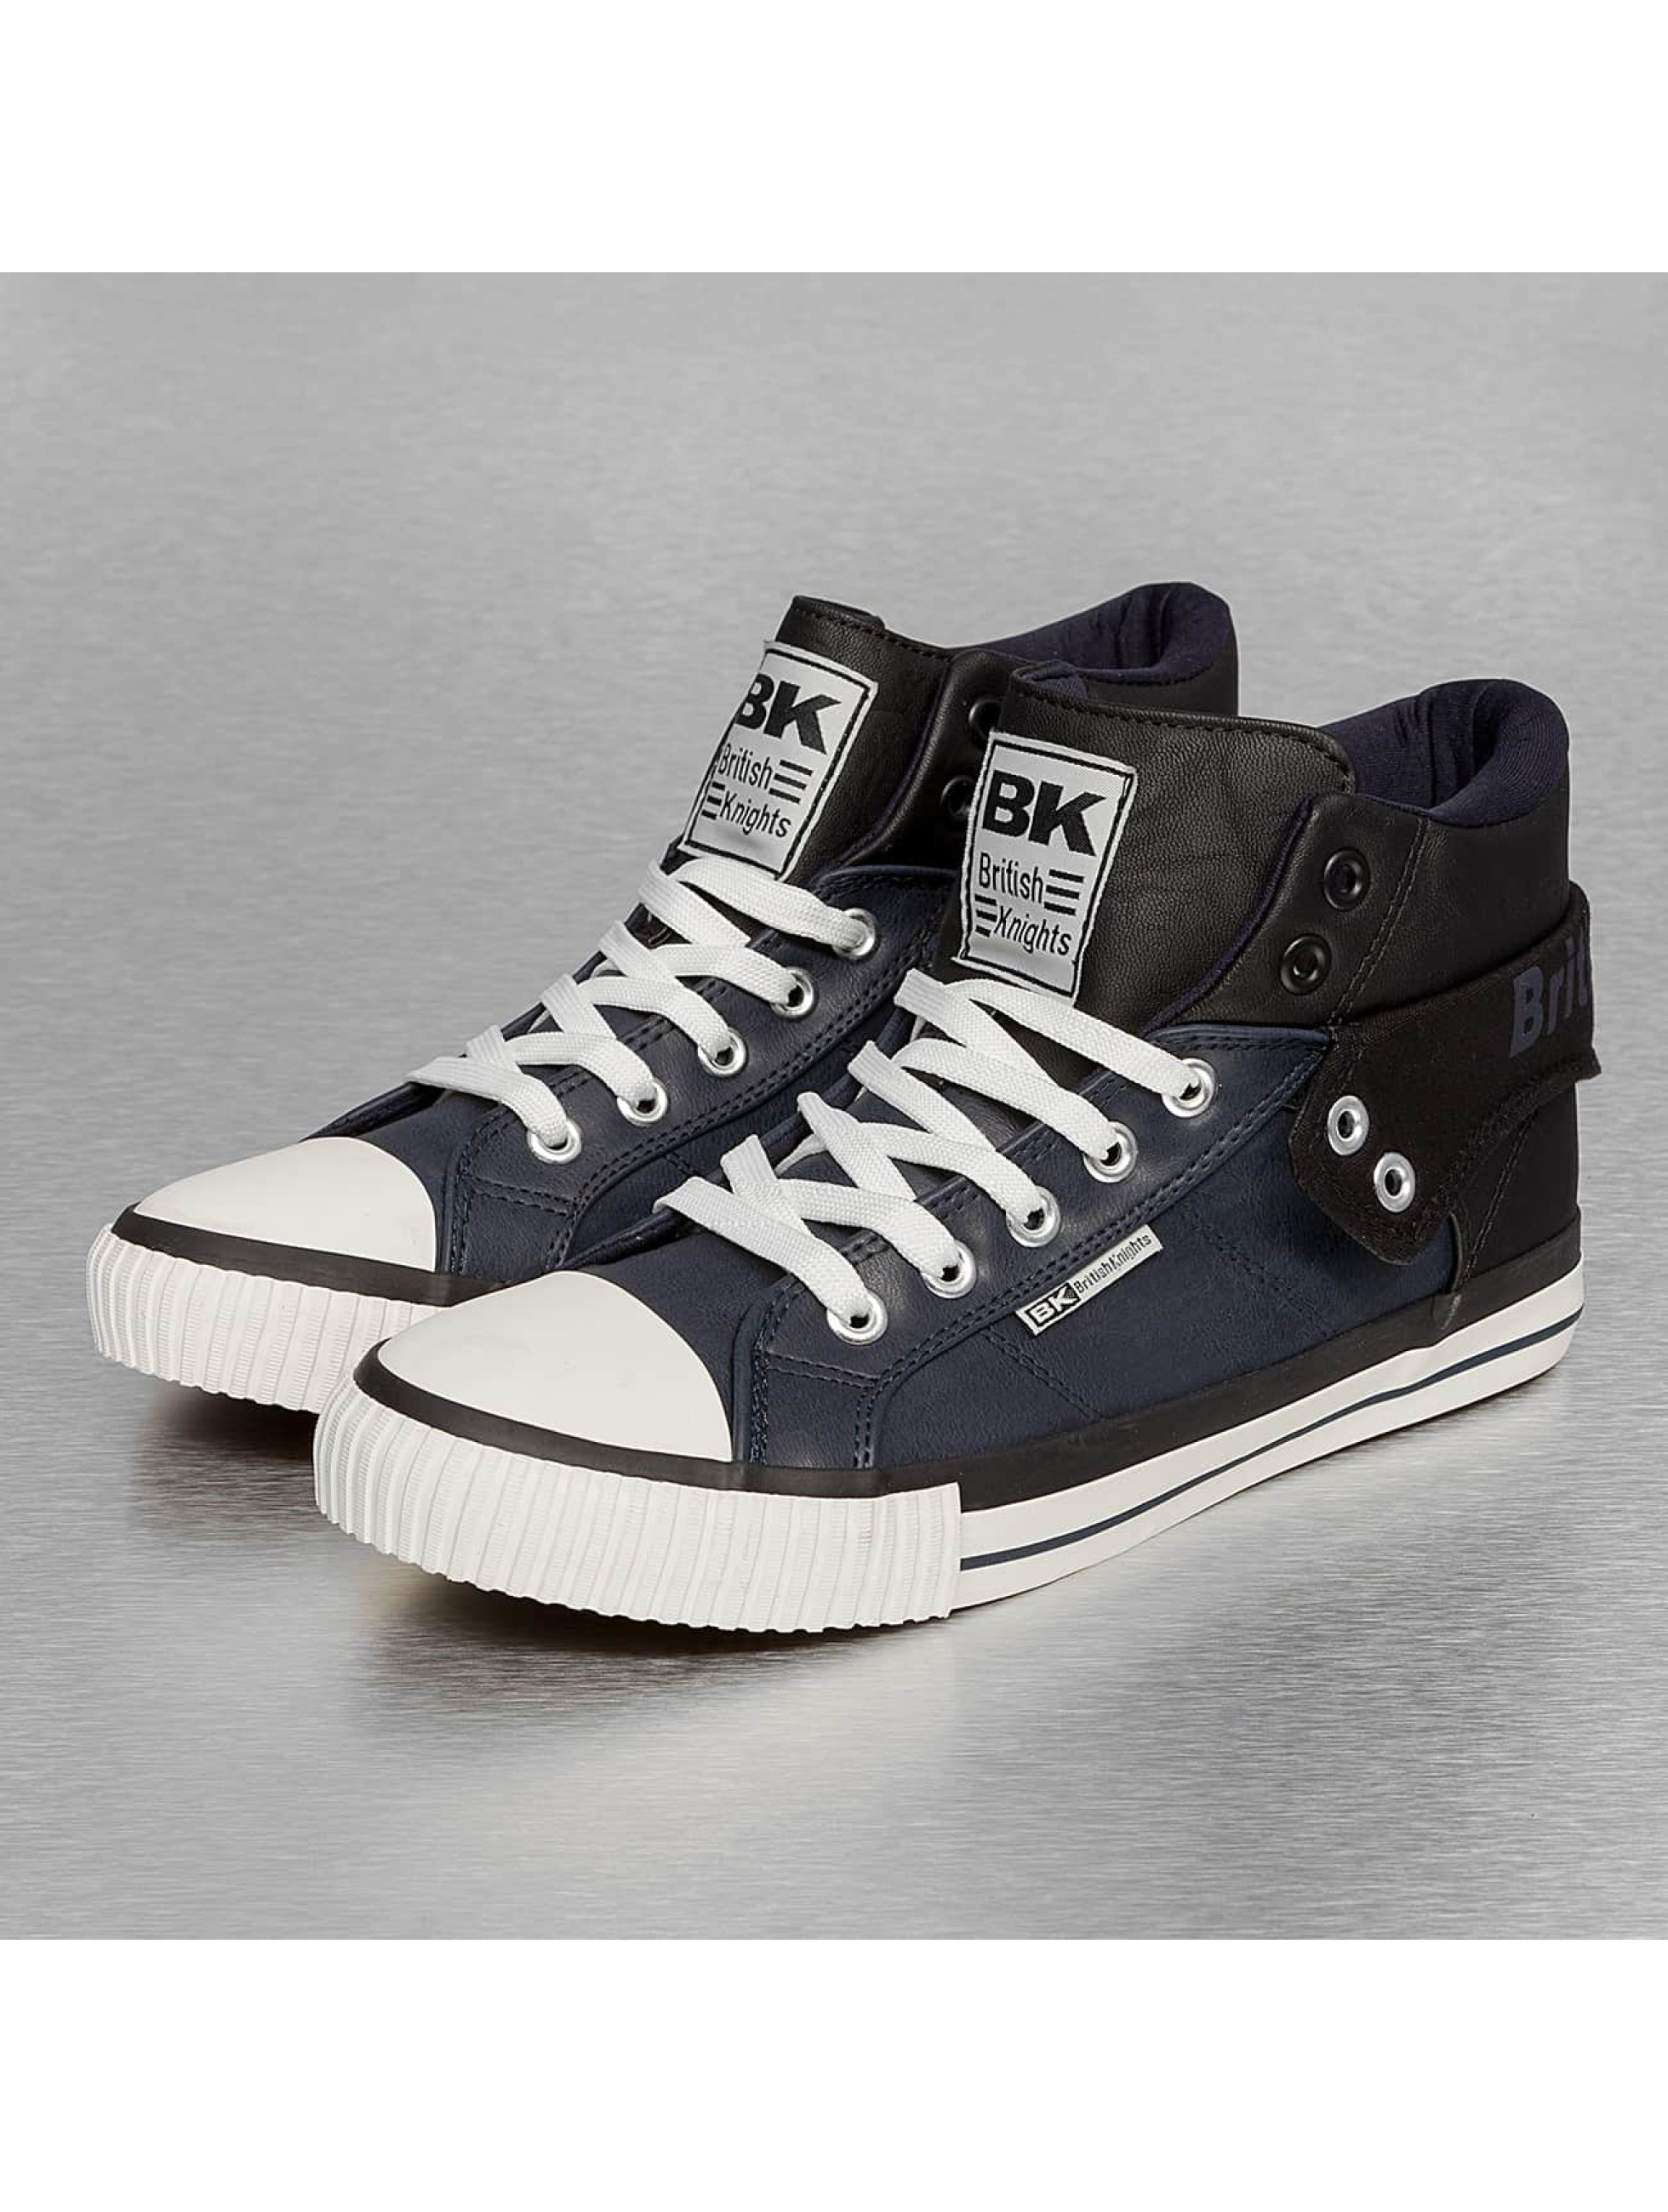 british knights schuhe sneaker roco pu in blau 213766. Black Bedroom Furniture Sets. Home Design Ideas